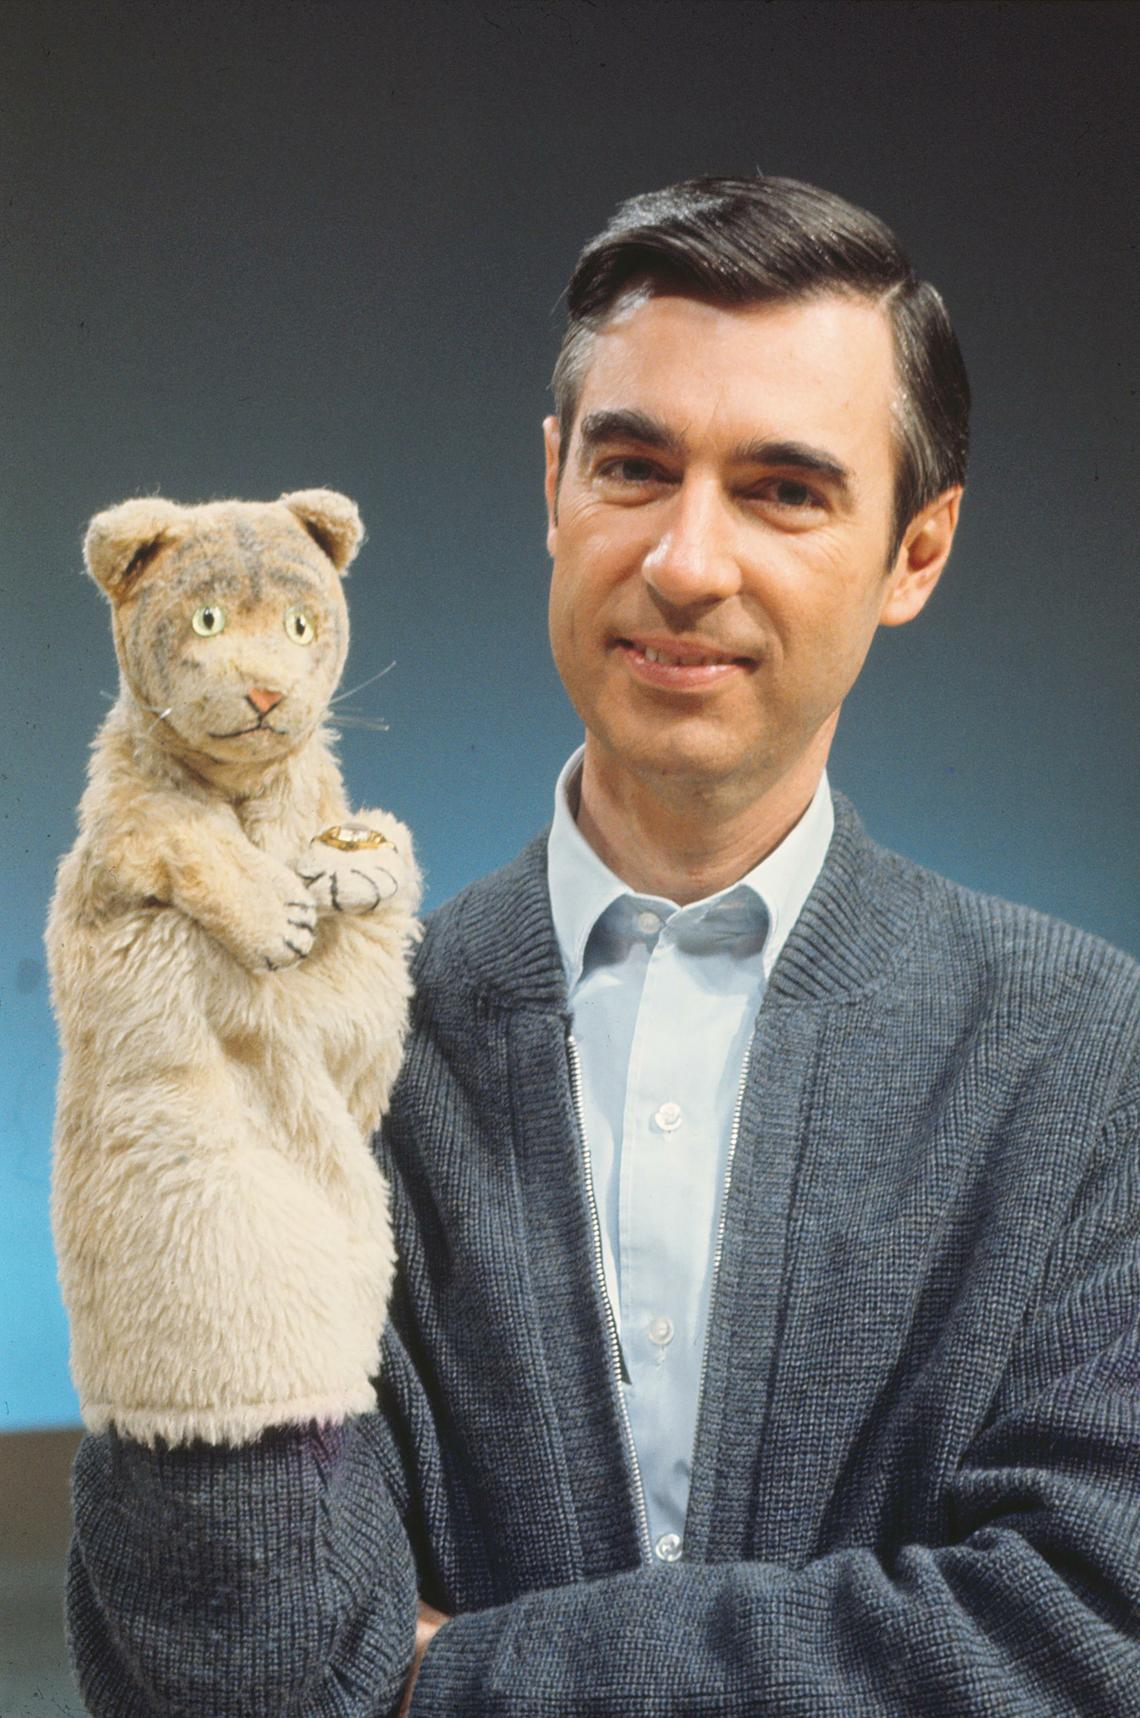 Fred Rogers with Daniel Tiger from his show Mr. Rogers Neighborhood in the film, WON'T YOU BE MY NEIGHBOR?, a Focus Features release. (Photo: The Fred Rogers Company, Focus Features)